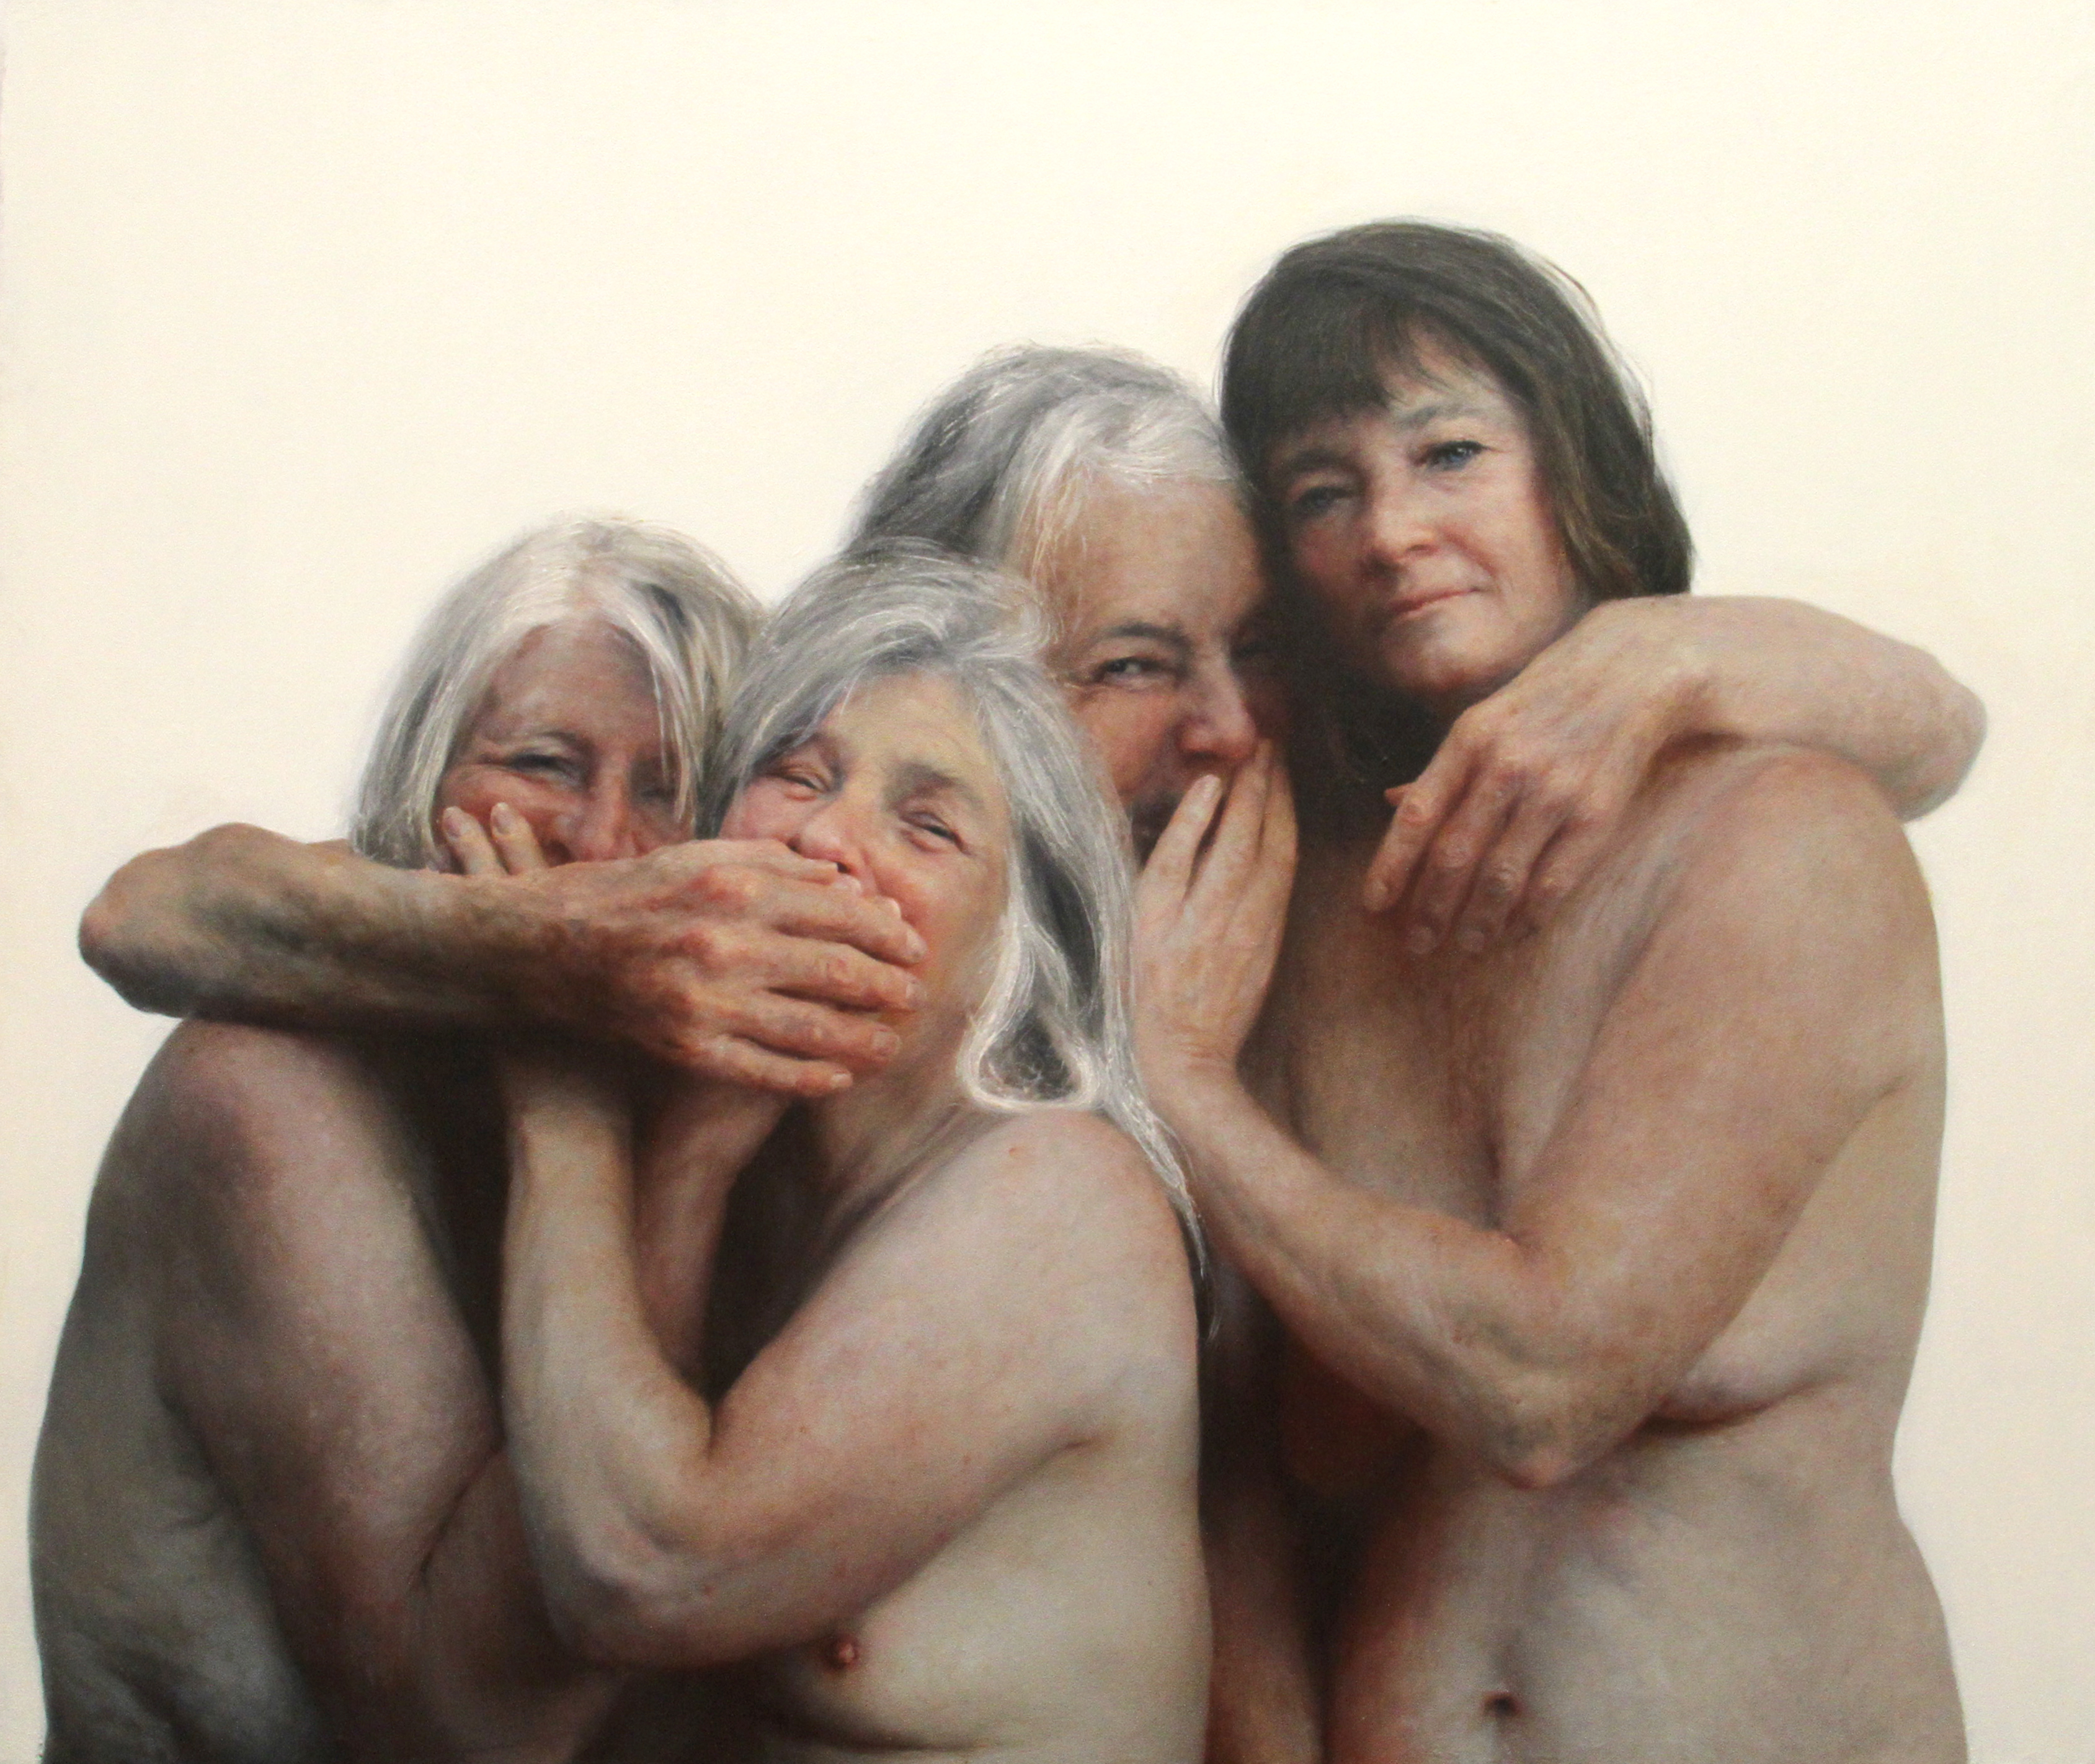 aleah chapin's naked old women (nsfw) | art-sheep